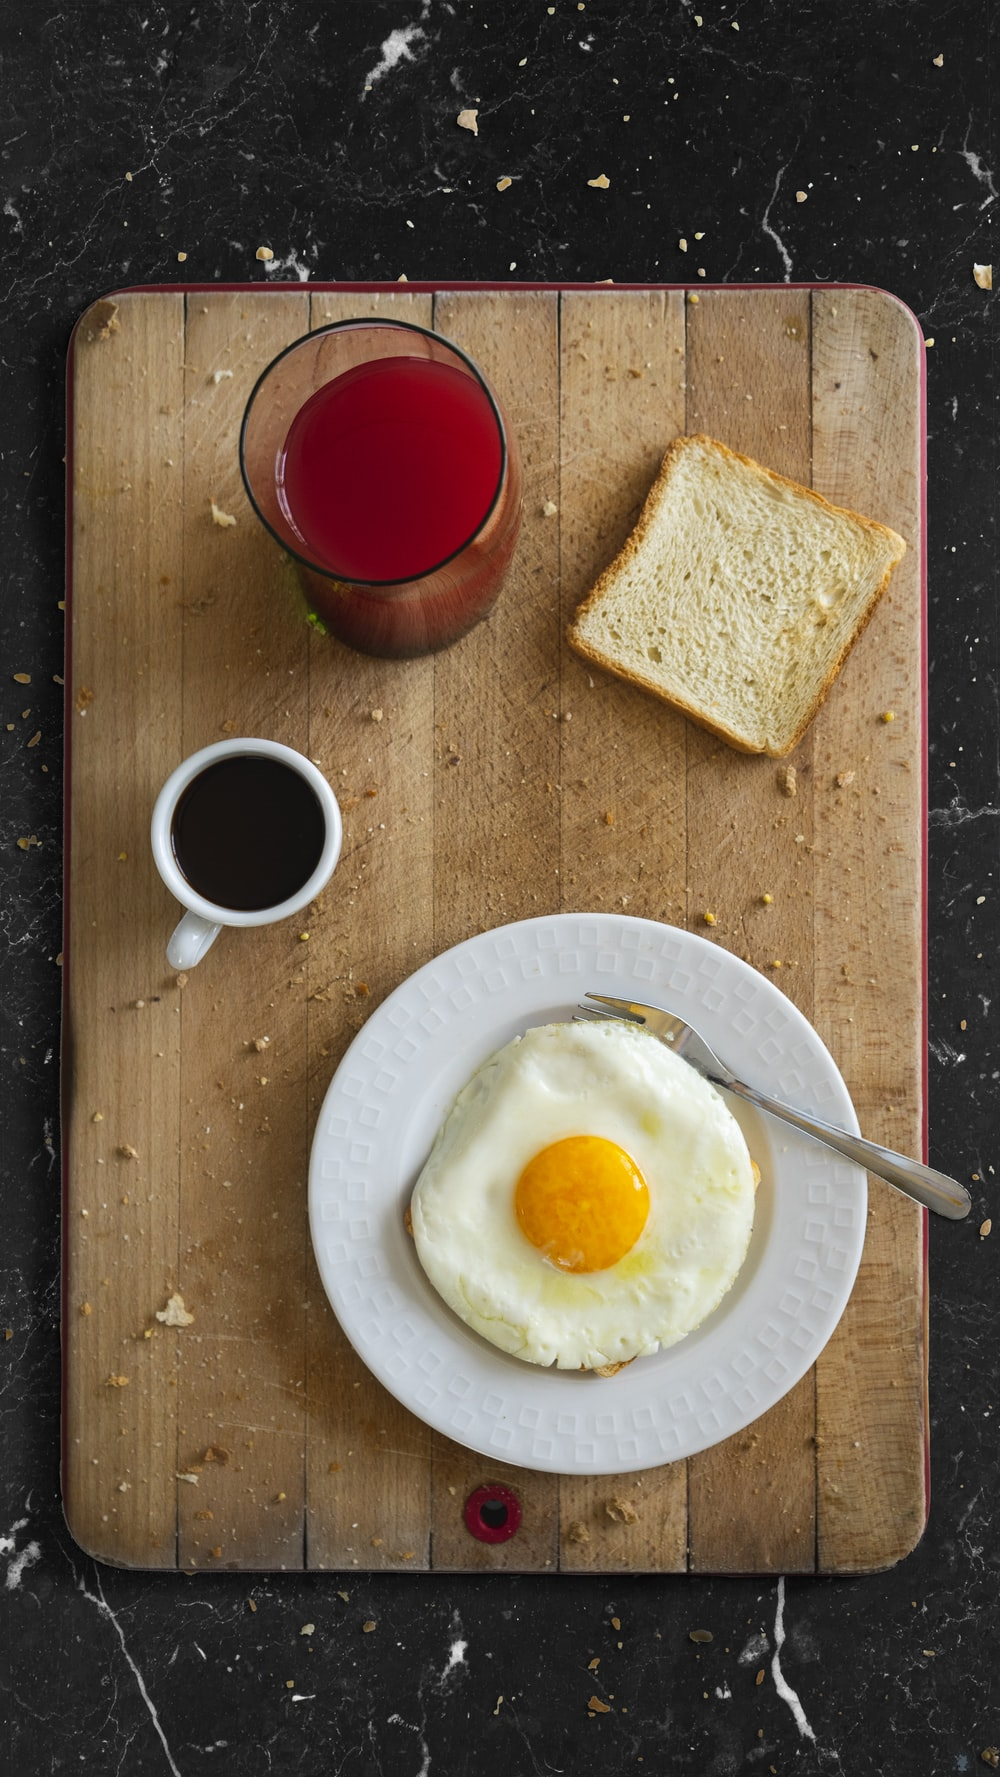 egg on white ceramic round plate beside red liquid in clear drinking glass